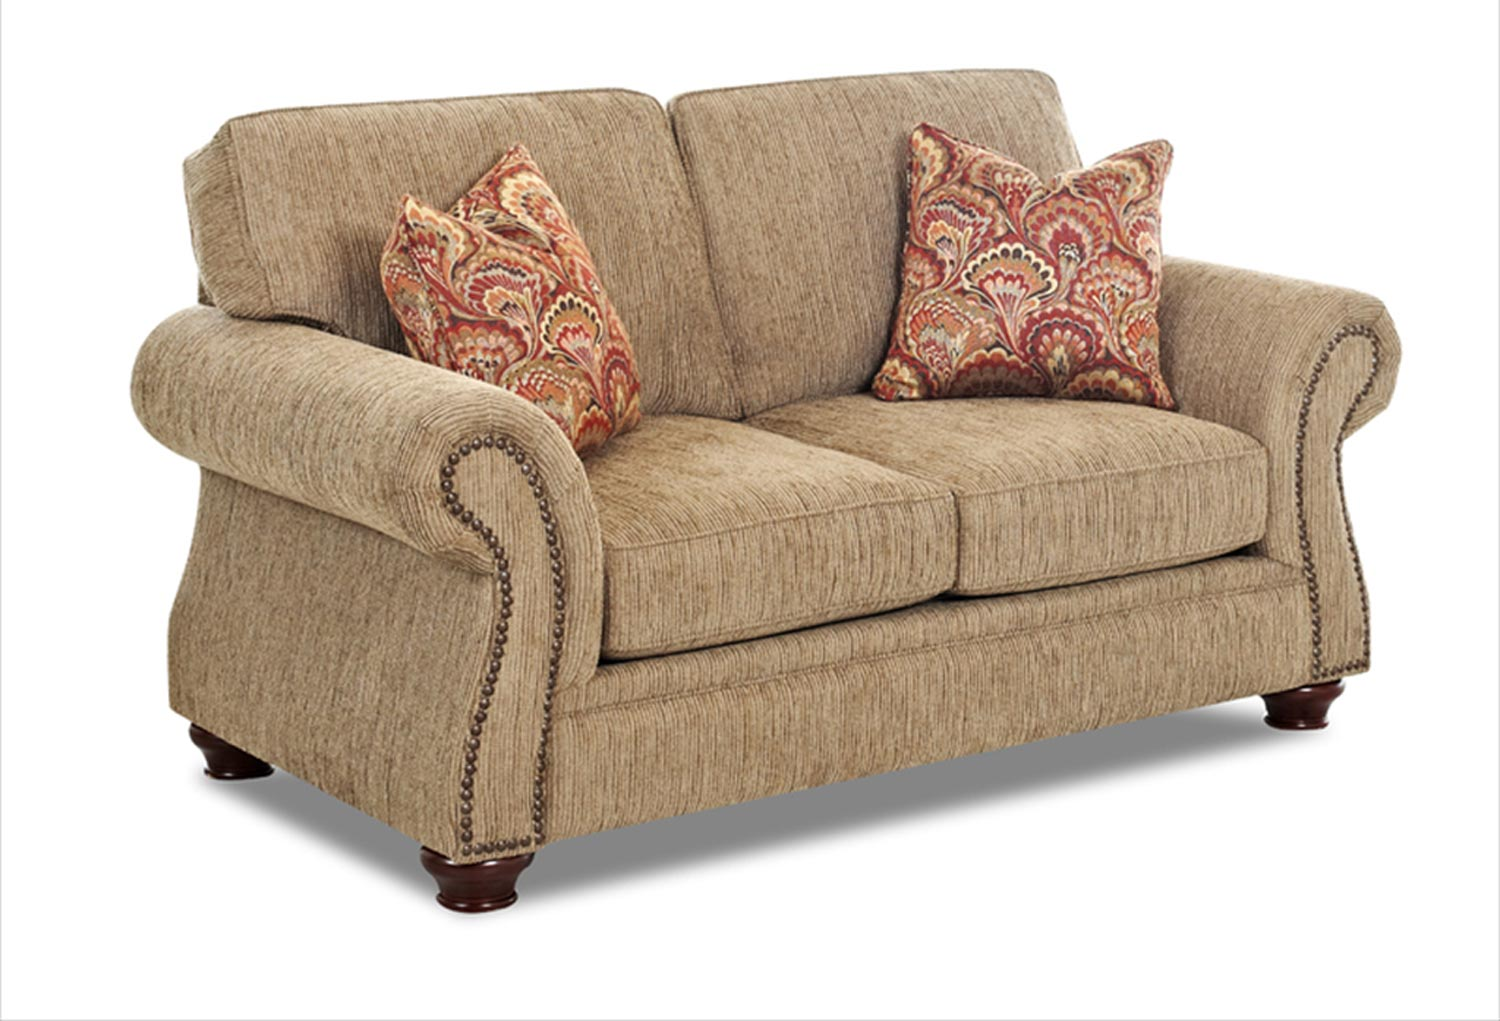 bentley casual sectional sofa with slipcover by klaussner stretch covers ready made australia stuart set mocha k39610